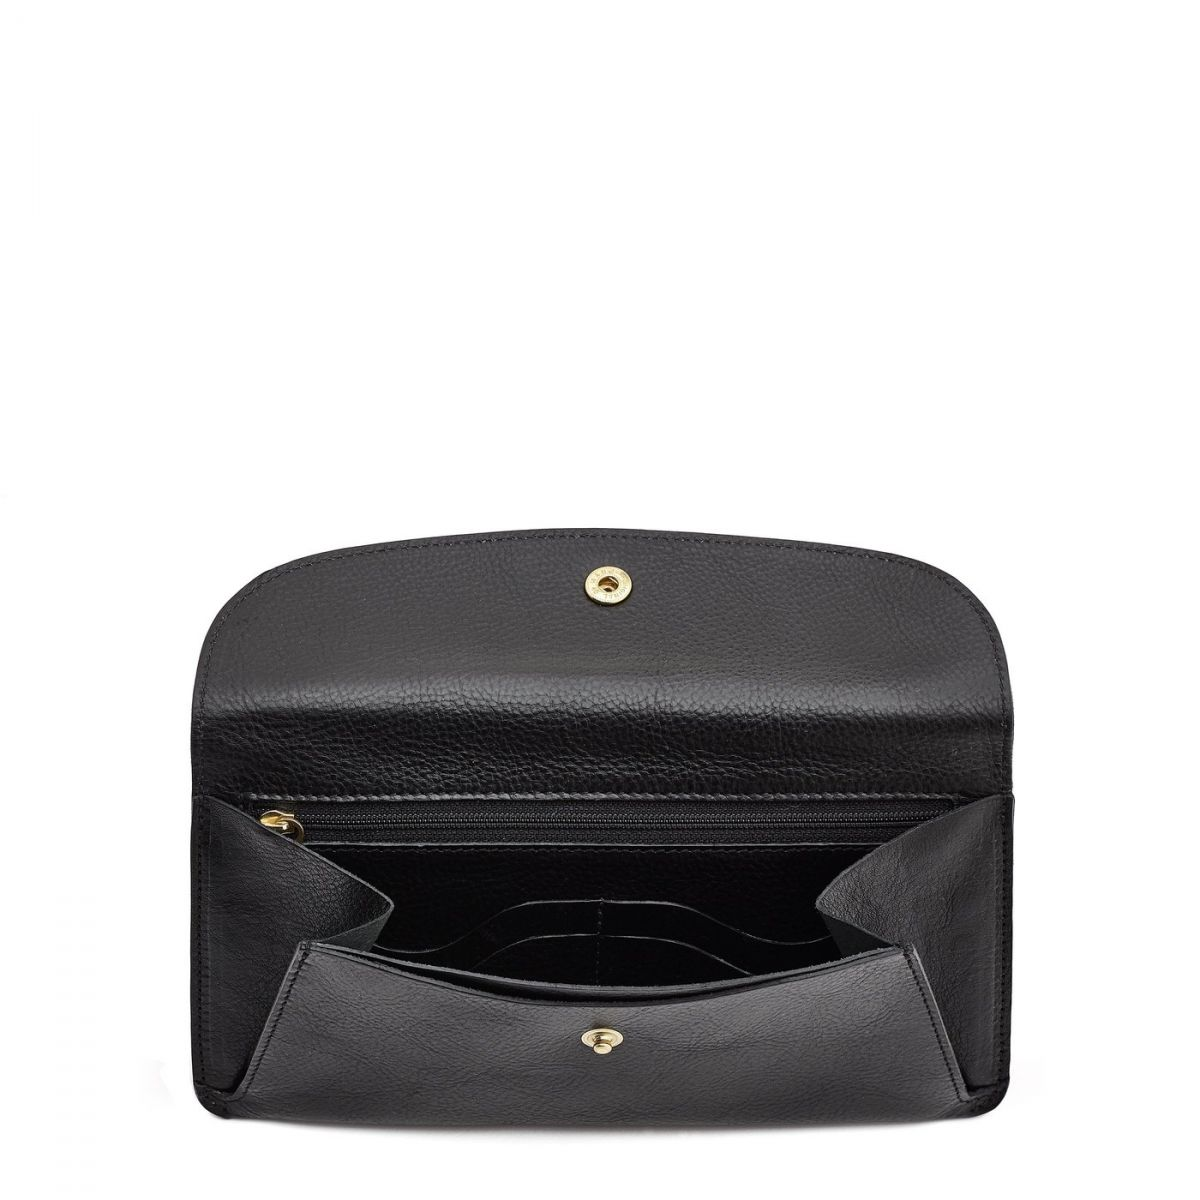 Women's Wallet  in Cowhide Leather SMW116 color Black | Details